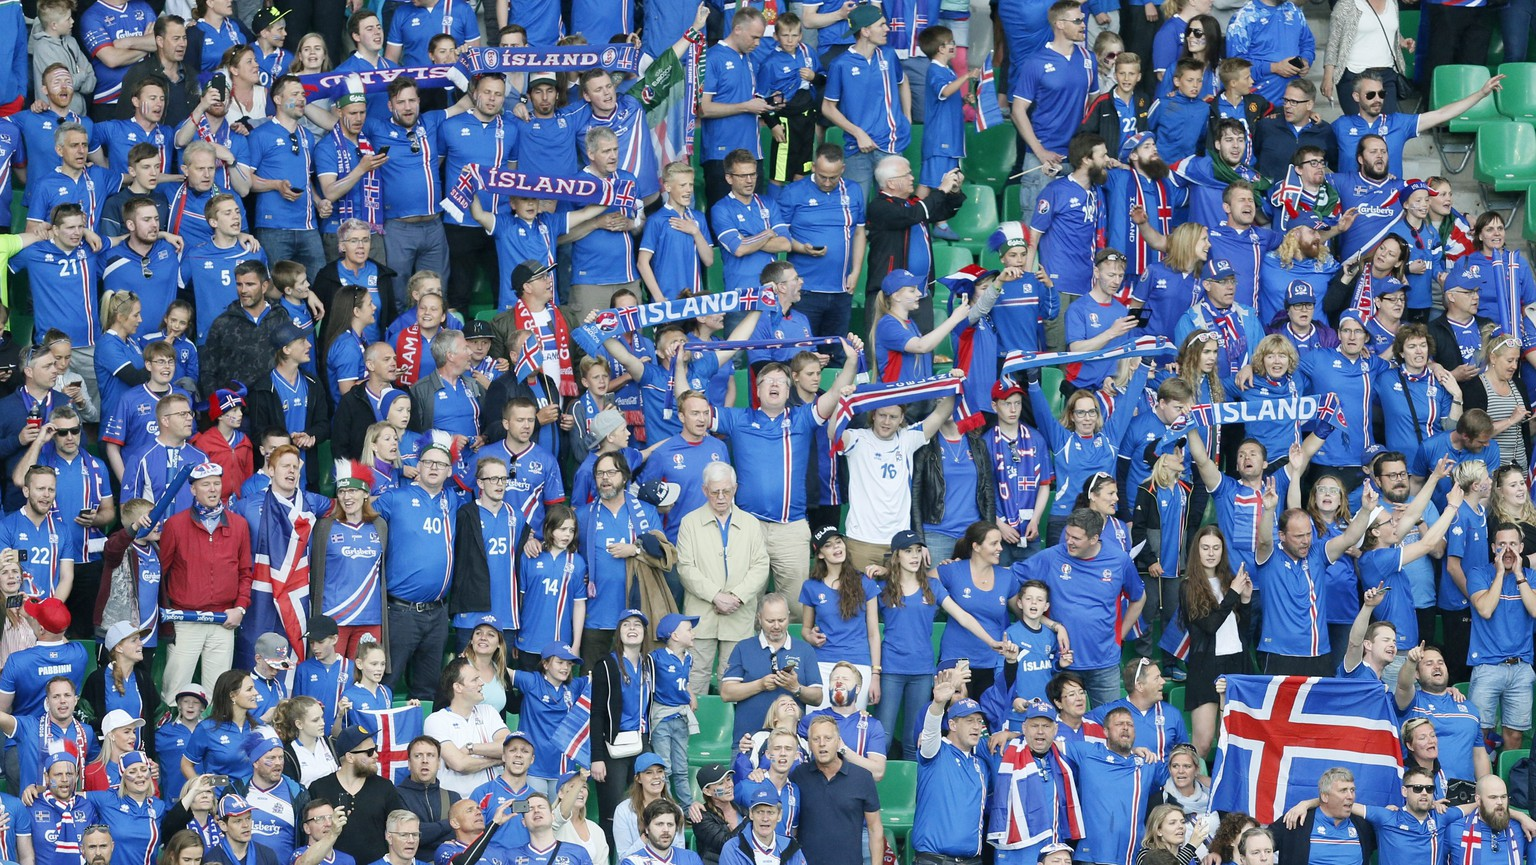 epa05365123 Iceland fans cheer for their team before the UEFA EURO 2016 group F preliminary round match between Portugal and Iceland at Stade Geoffroy Guichard in Saint-Etienne, France, 14 June 2016.